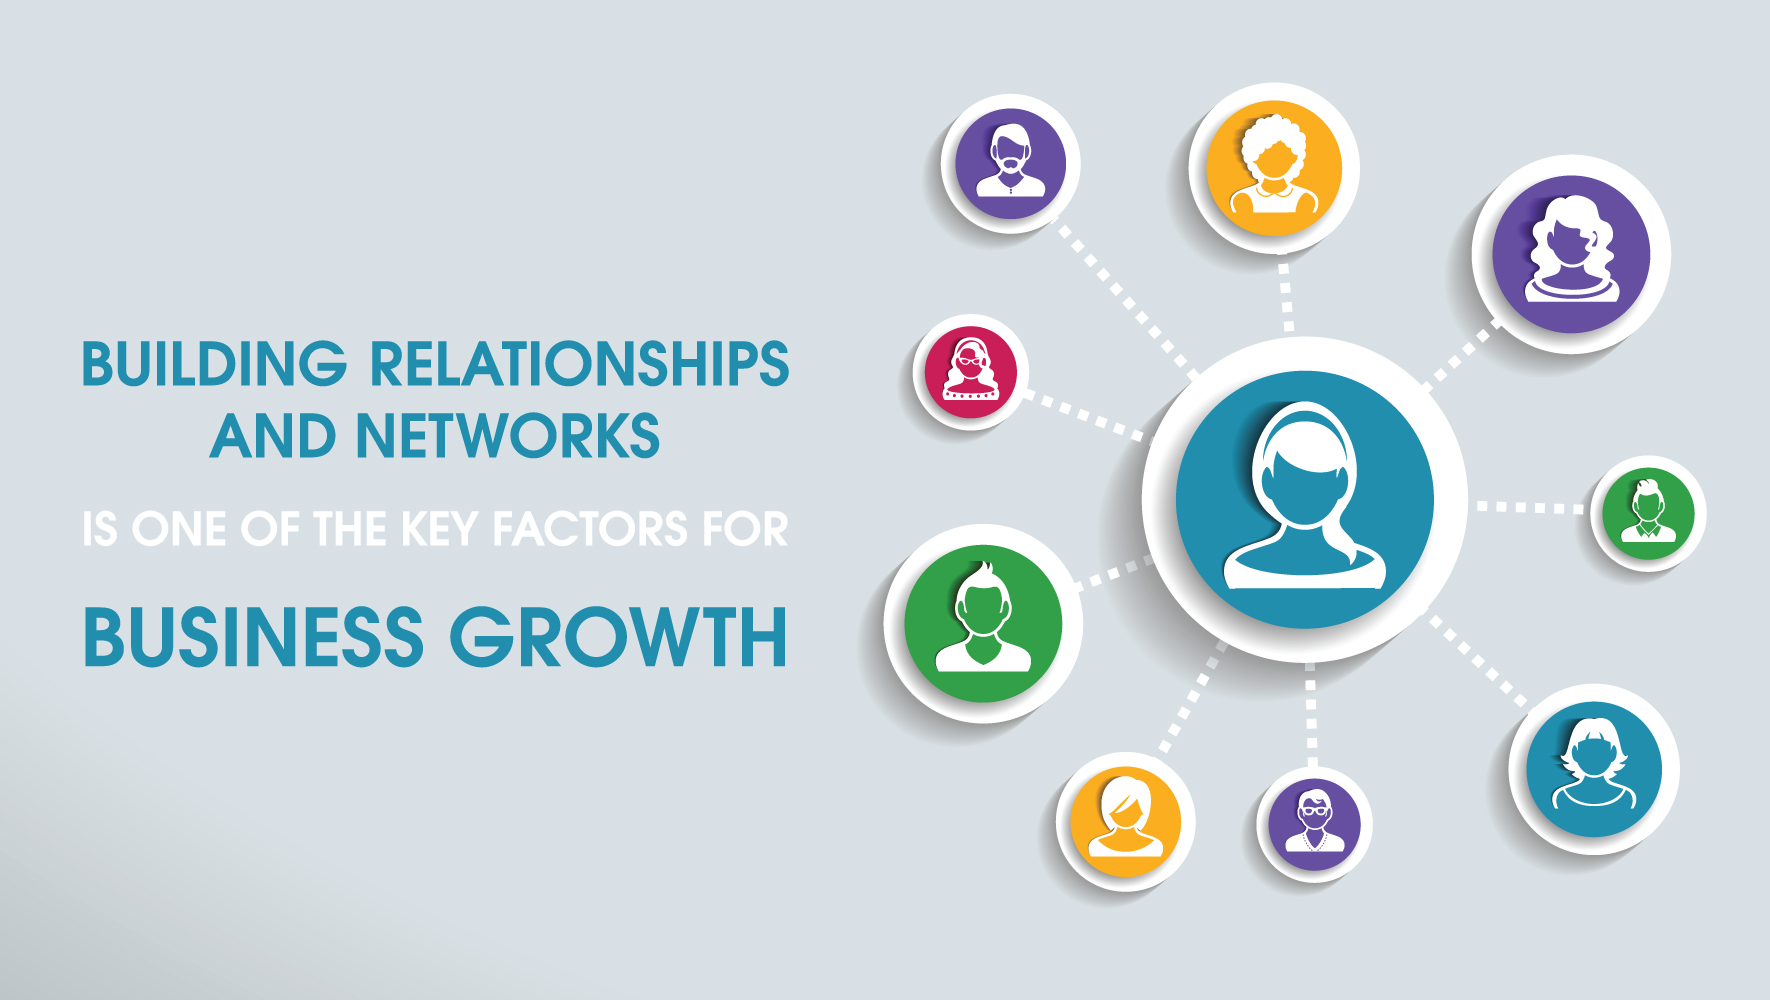 Building relationships and networks